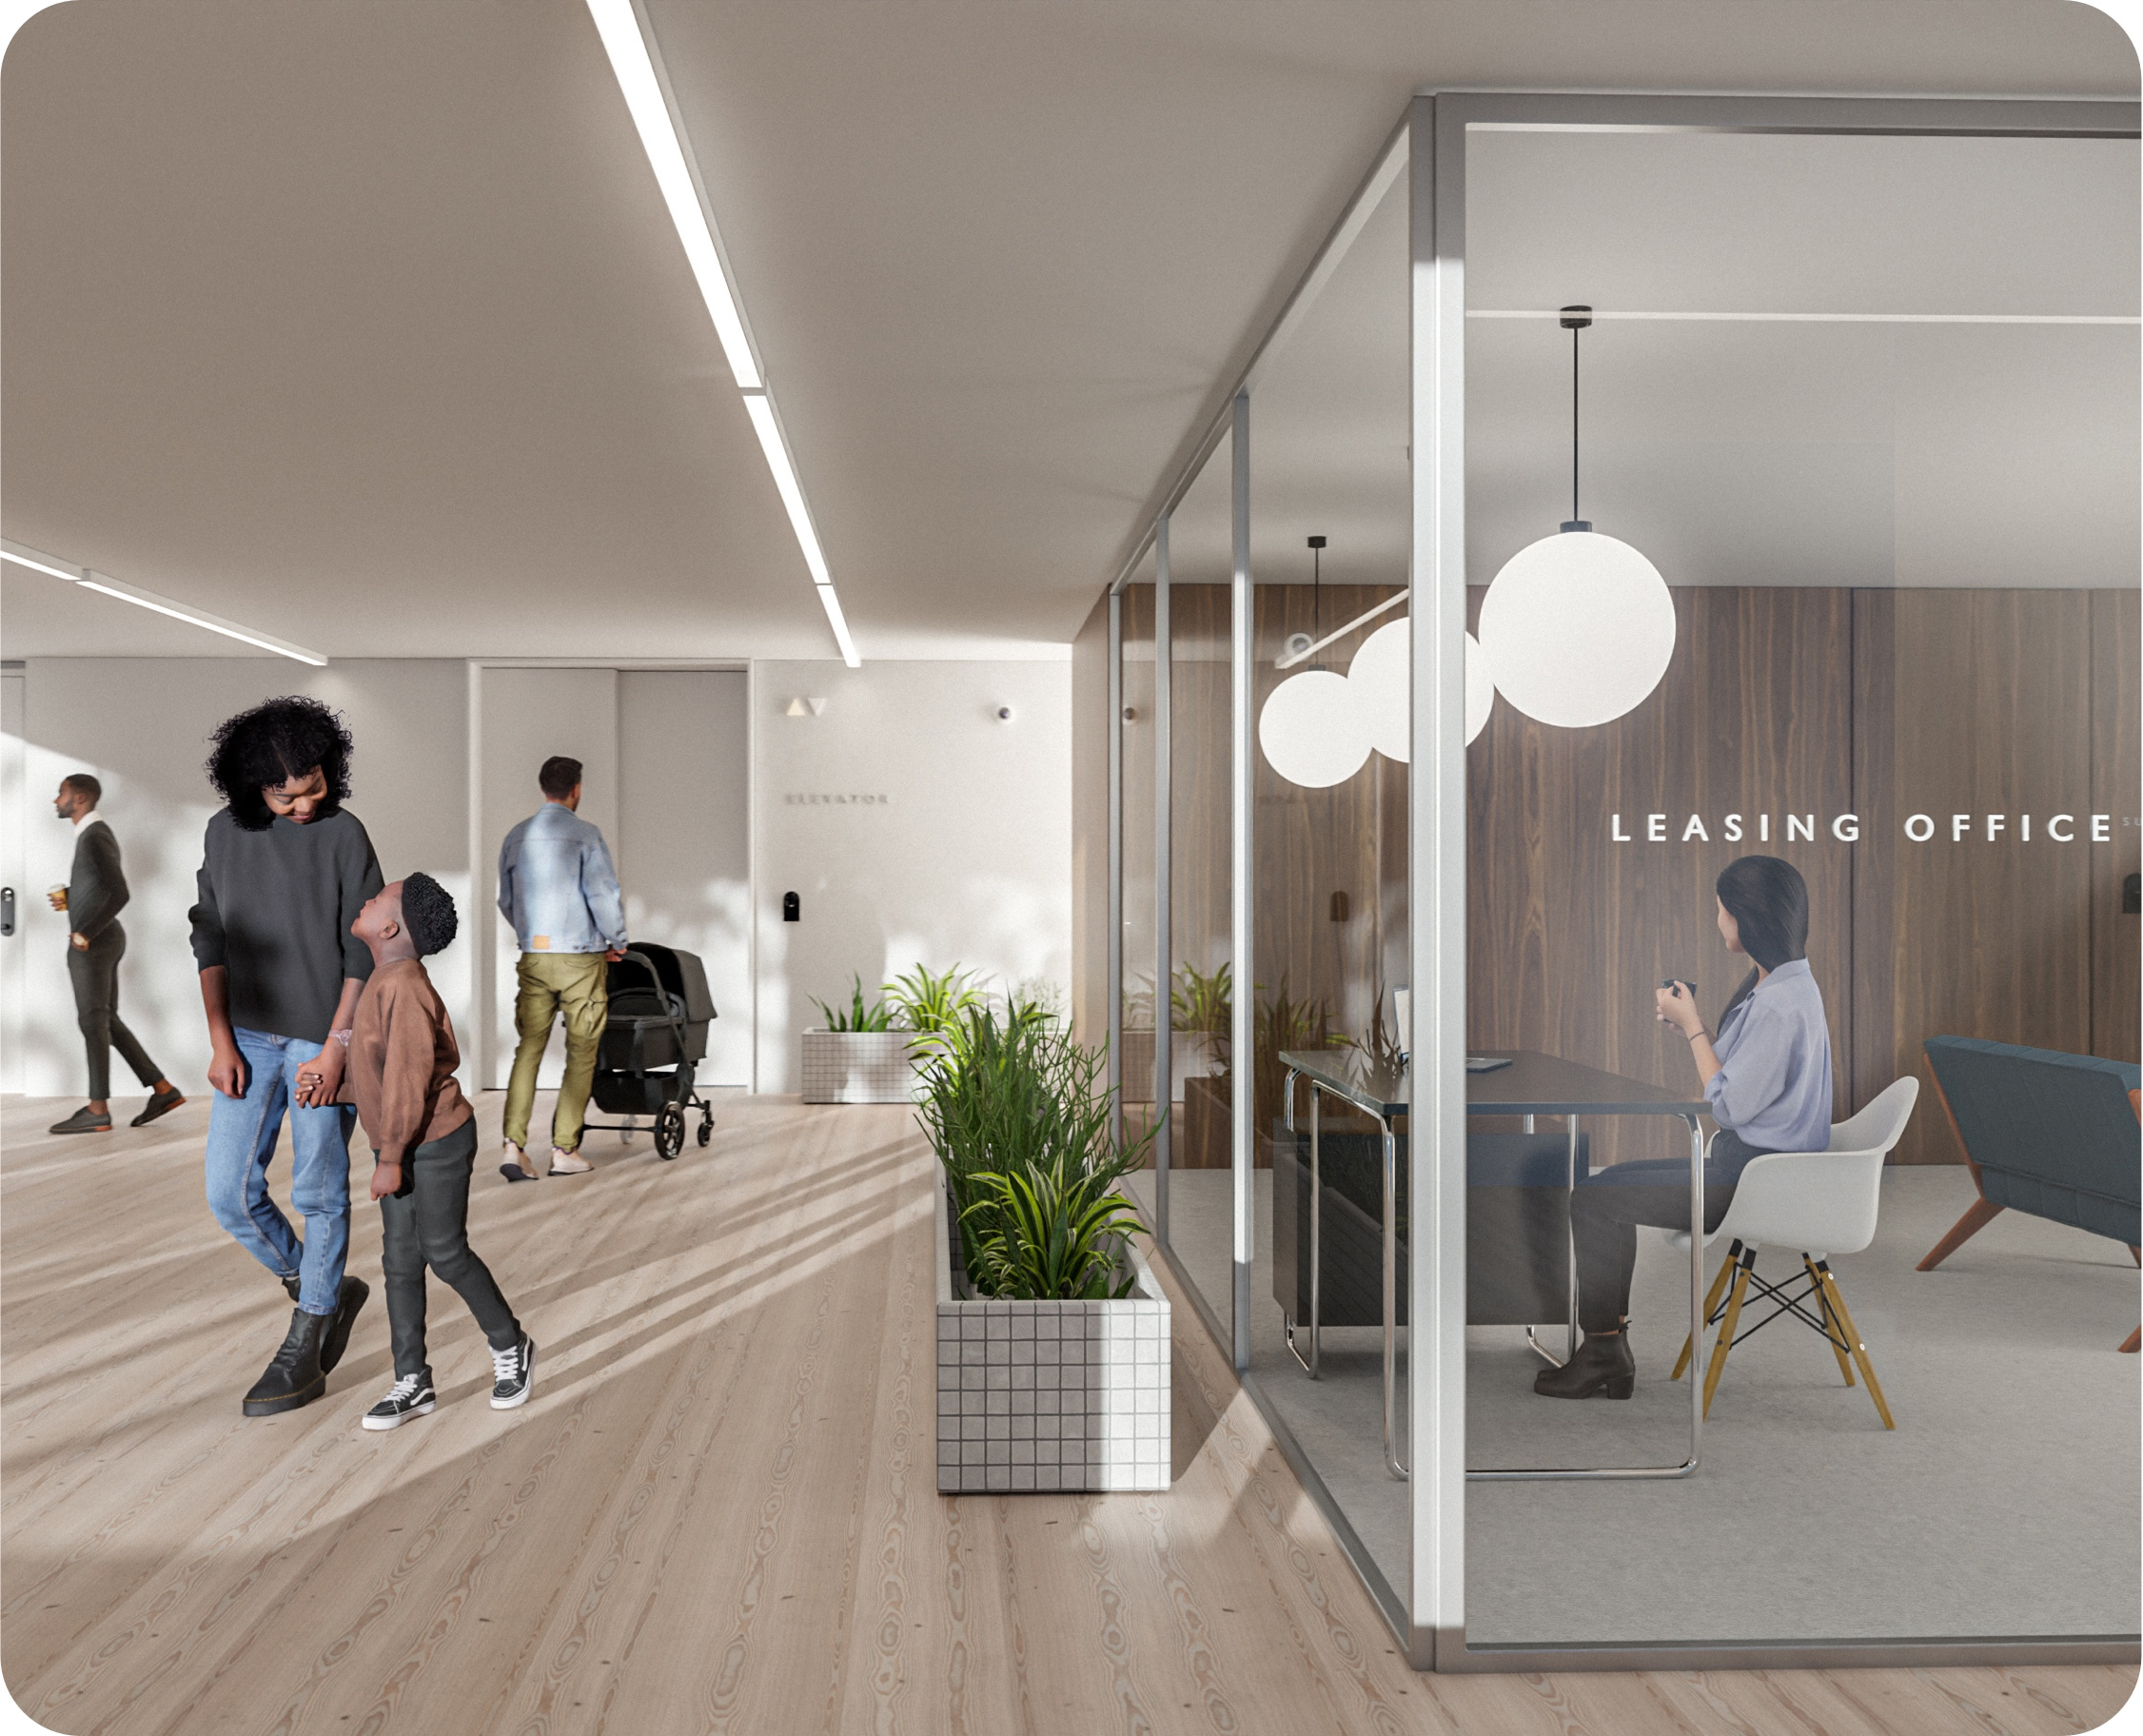 Residential building lobby showing current residents walking with their family and prospective residents in the building's leasing office